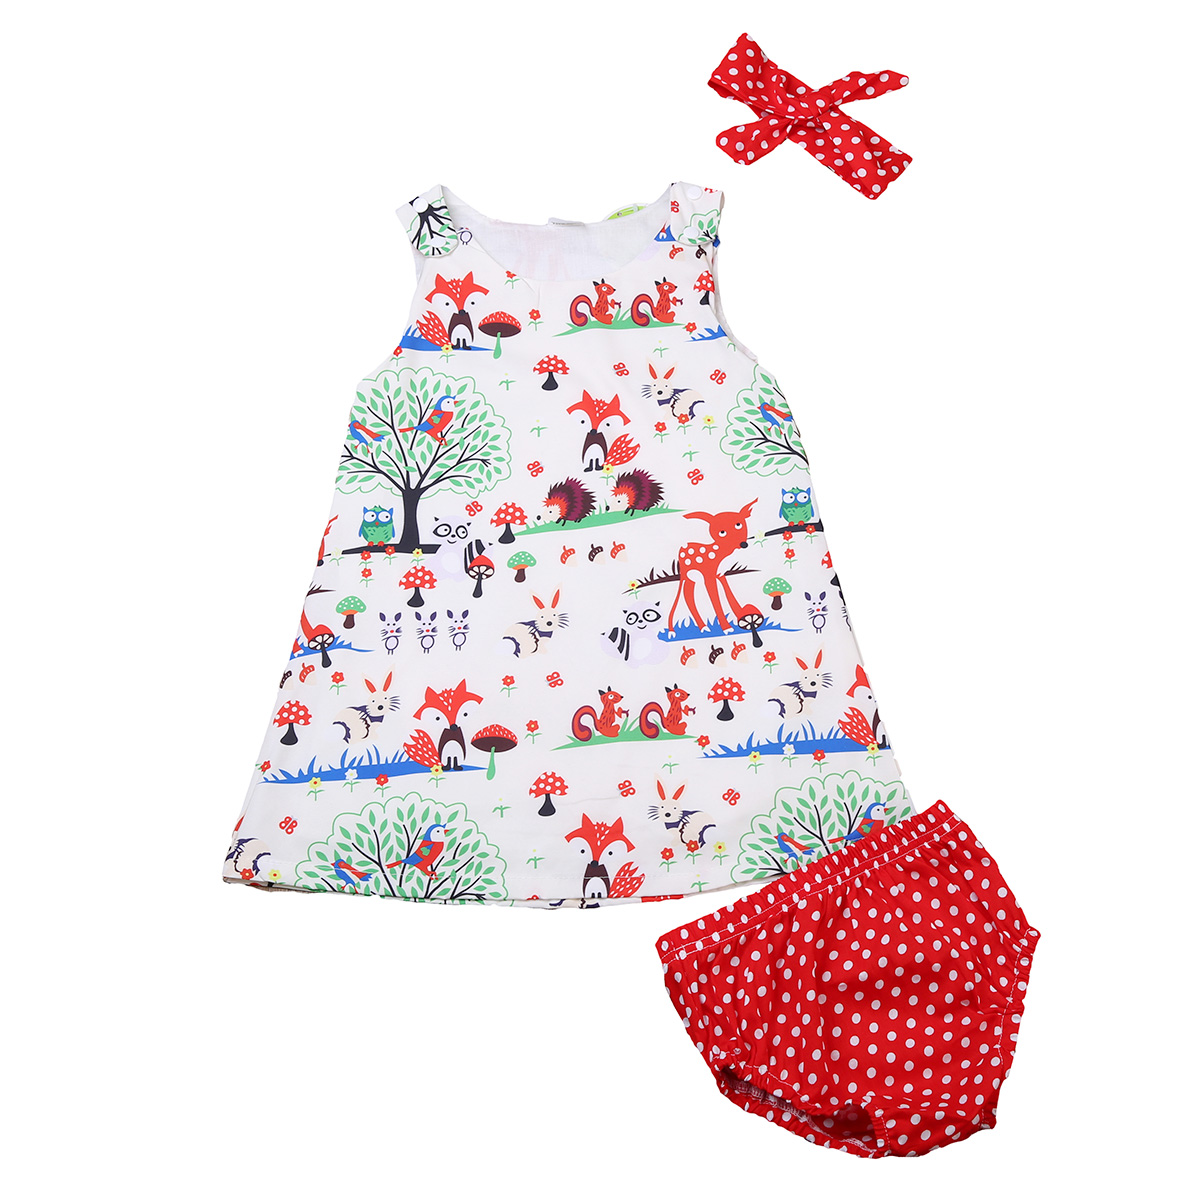 Newborn Toddler Clothes Baby Girls Dress Pants Shorts Headband Outfit Sets Children Girl Summer 3PCS Set Clothing Lovely fashion 2pcs set newborn baby girls jumpsuit toddler girls flower pattern outfit clothes romper bodysuit pants